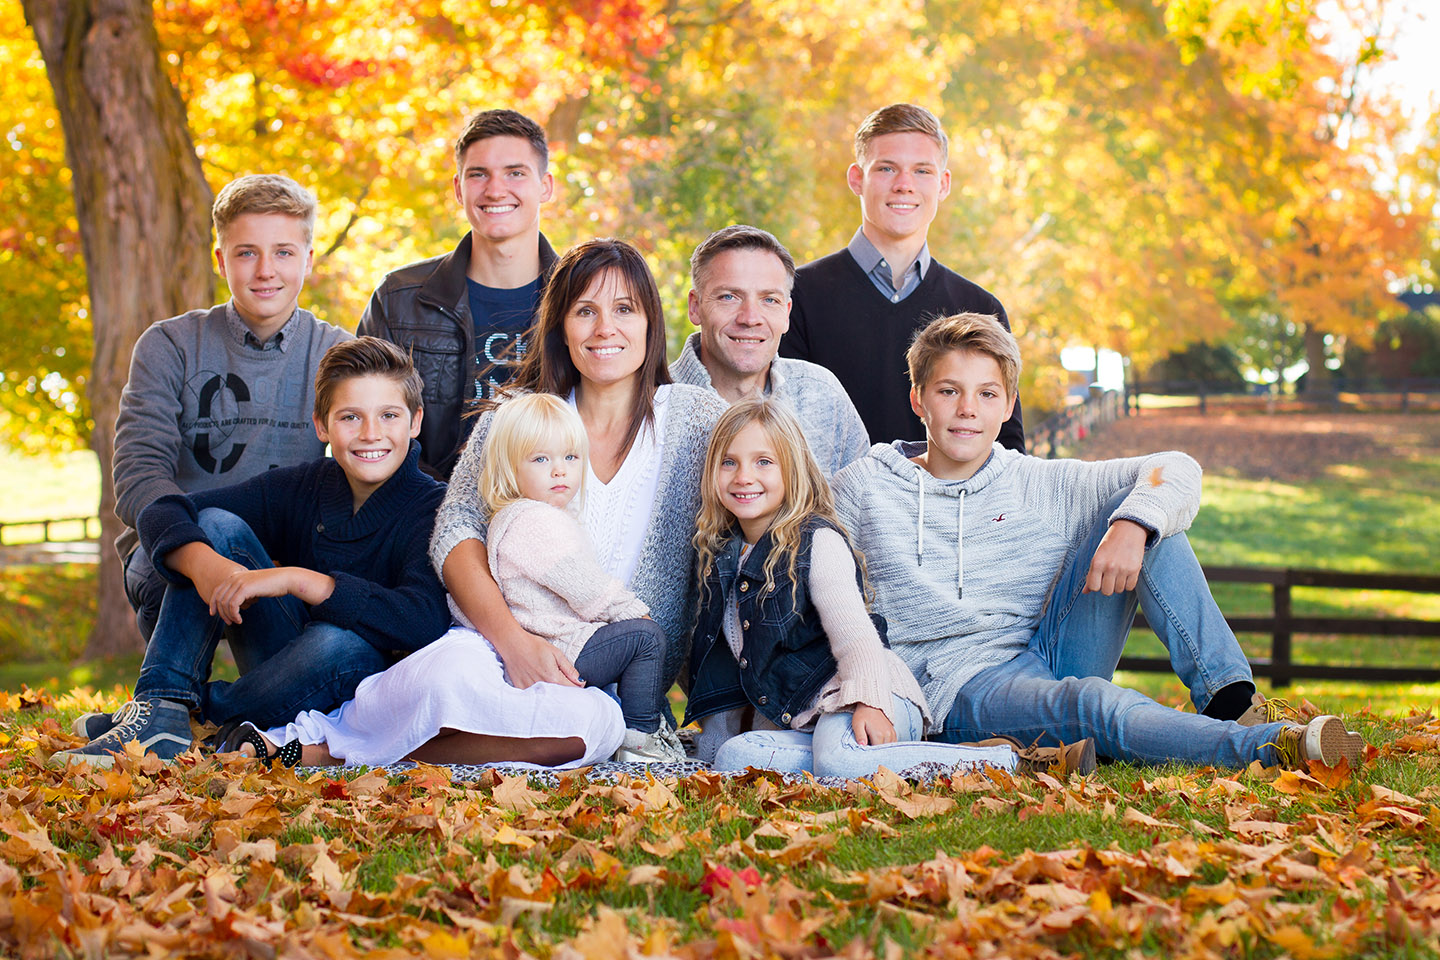 A portrait of a family taken during autumn in Orangeville by Frank Myrland Photography